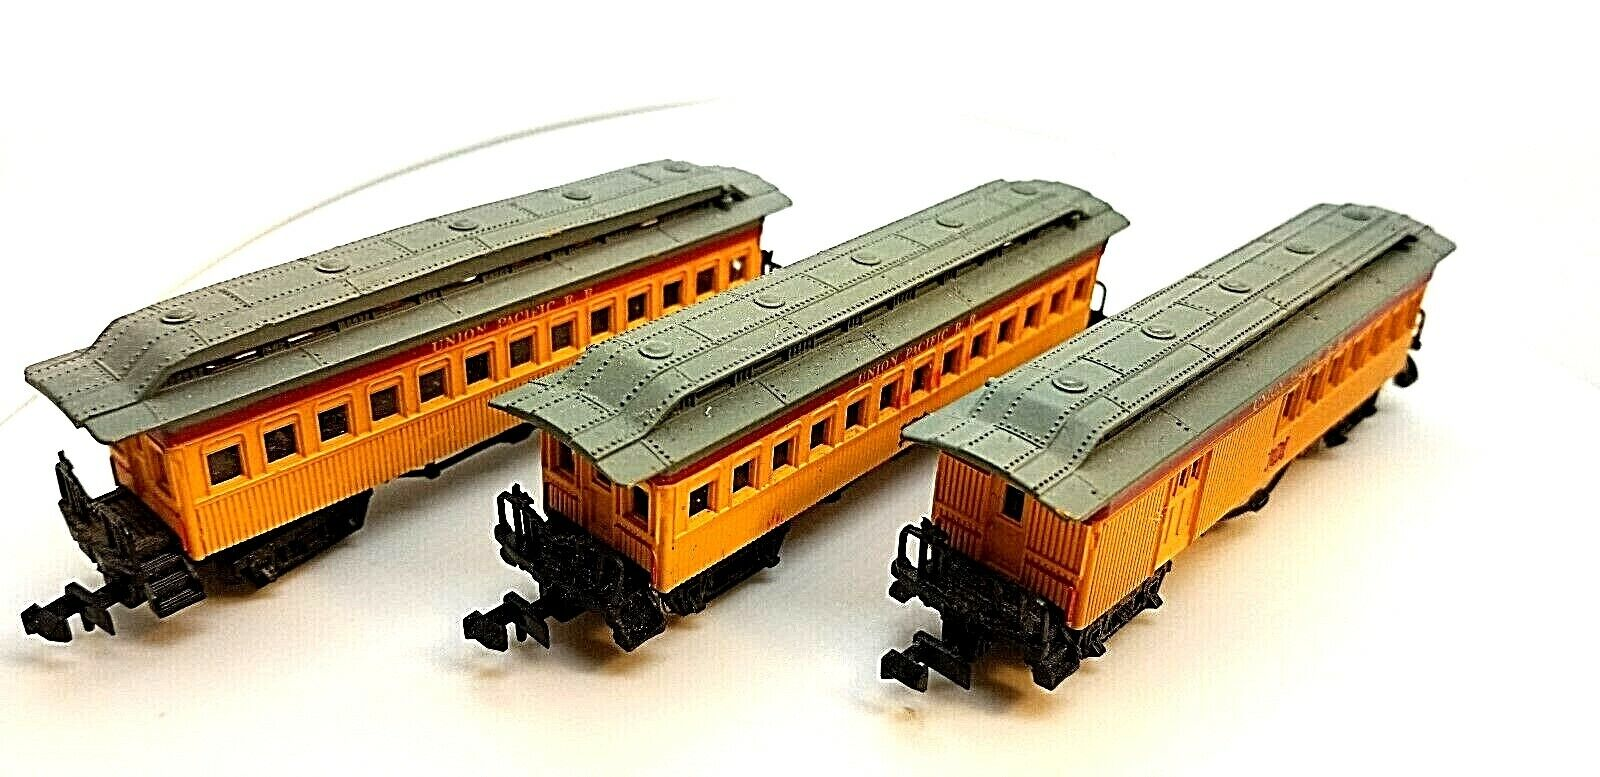 presa di fabbrica N N N Bachuomon Union Pacific 1860 Old Time 3 auto Passenger Set (no scatola)  acquista online oggi